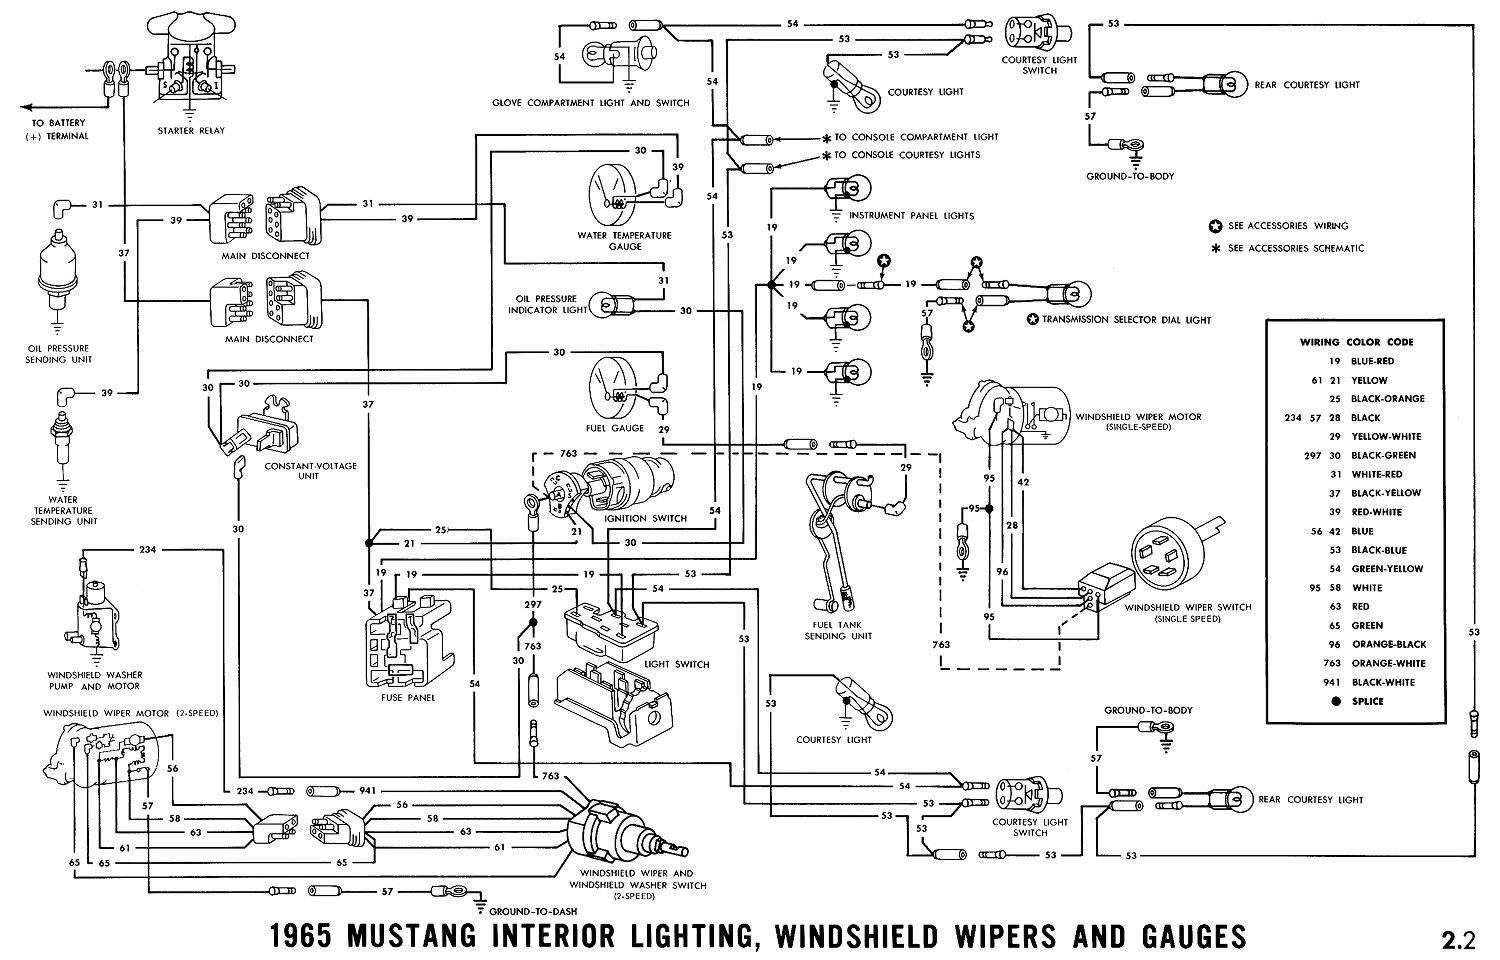 1970 Mustang Wiper Wiring Diagram For Light Switch 1973 Ford 1965 Image Rh Mainetreasurechest Com Solenoid